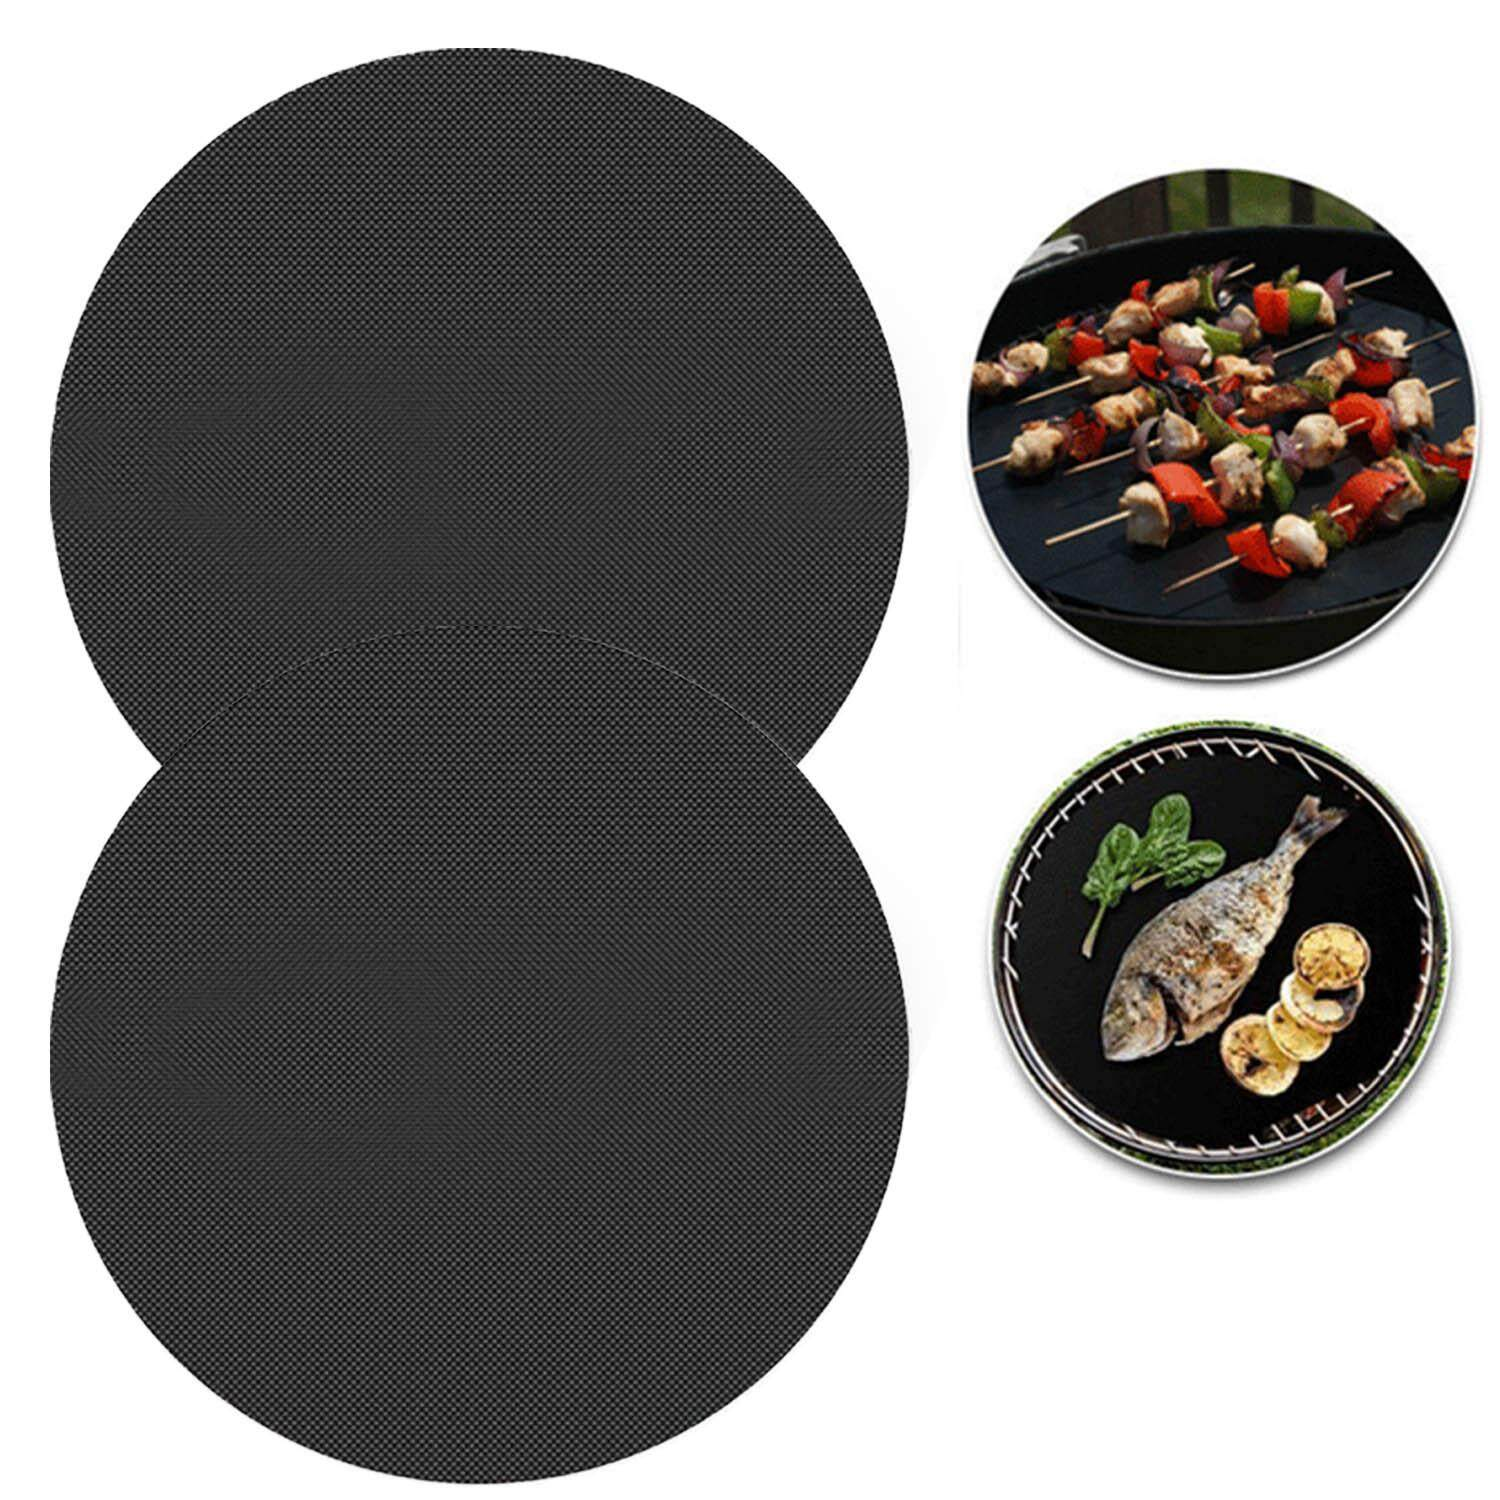 2 PCS Reusable Round Non Stick BBQ Barbecue Grill Mat Pad Sheet Baking Pan Fry Liner for Charcoal Grills Electric Ovens Microwave Ovens - intl